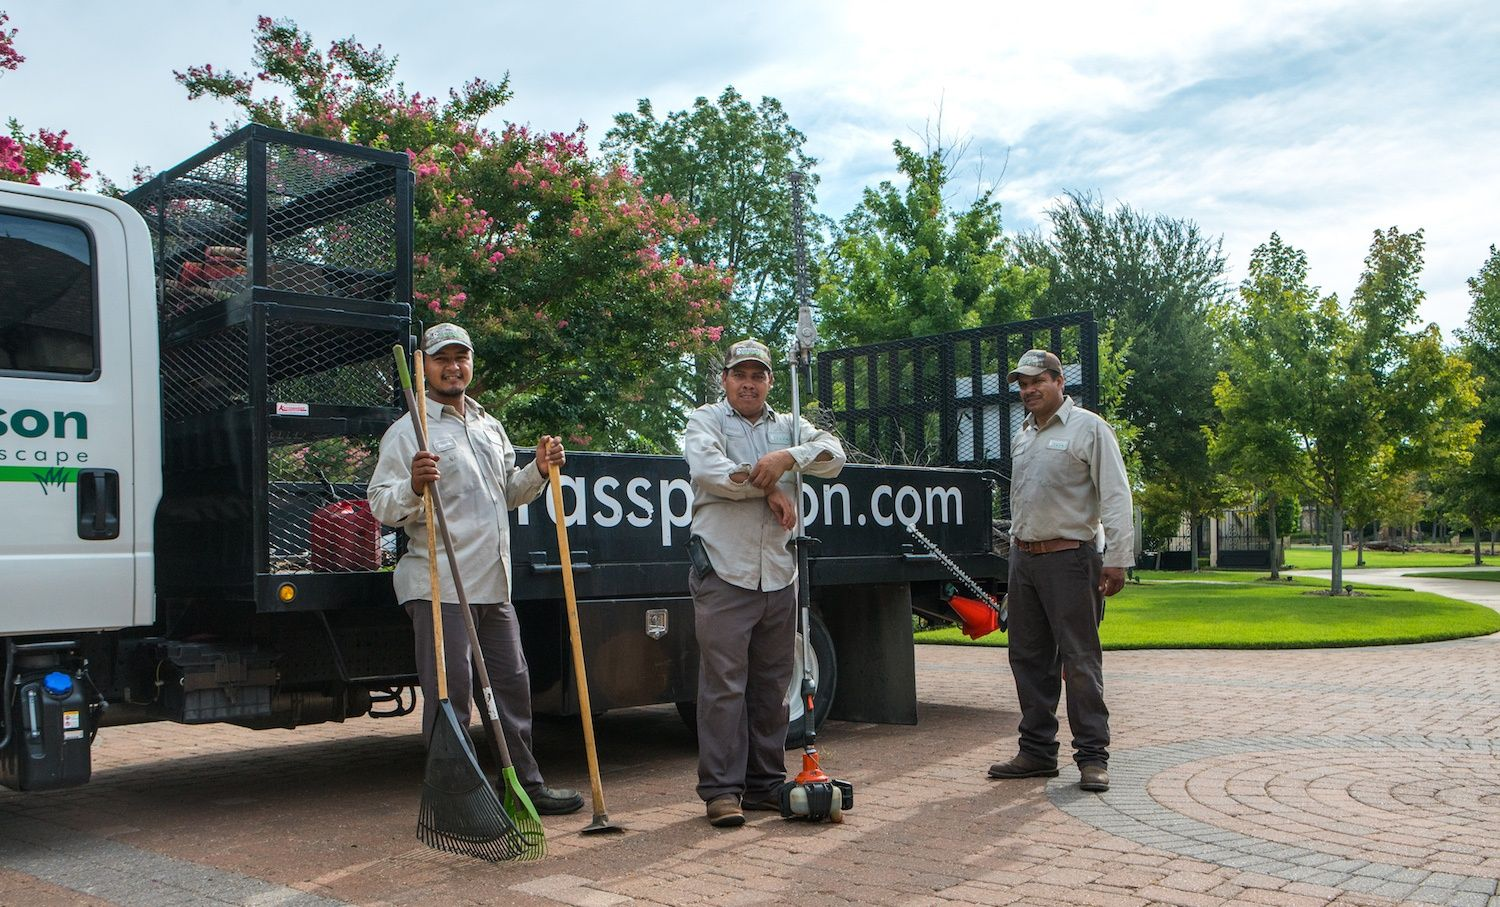 lawn care and landscaping jobs lewisville tx